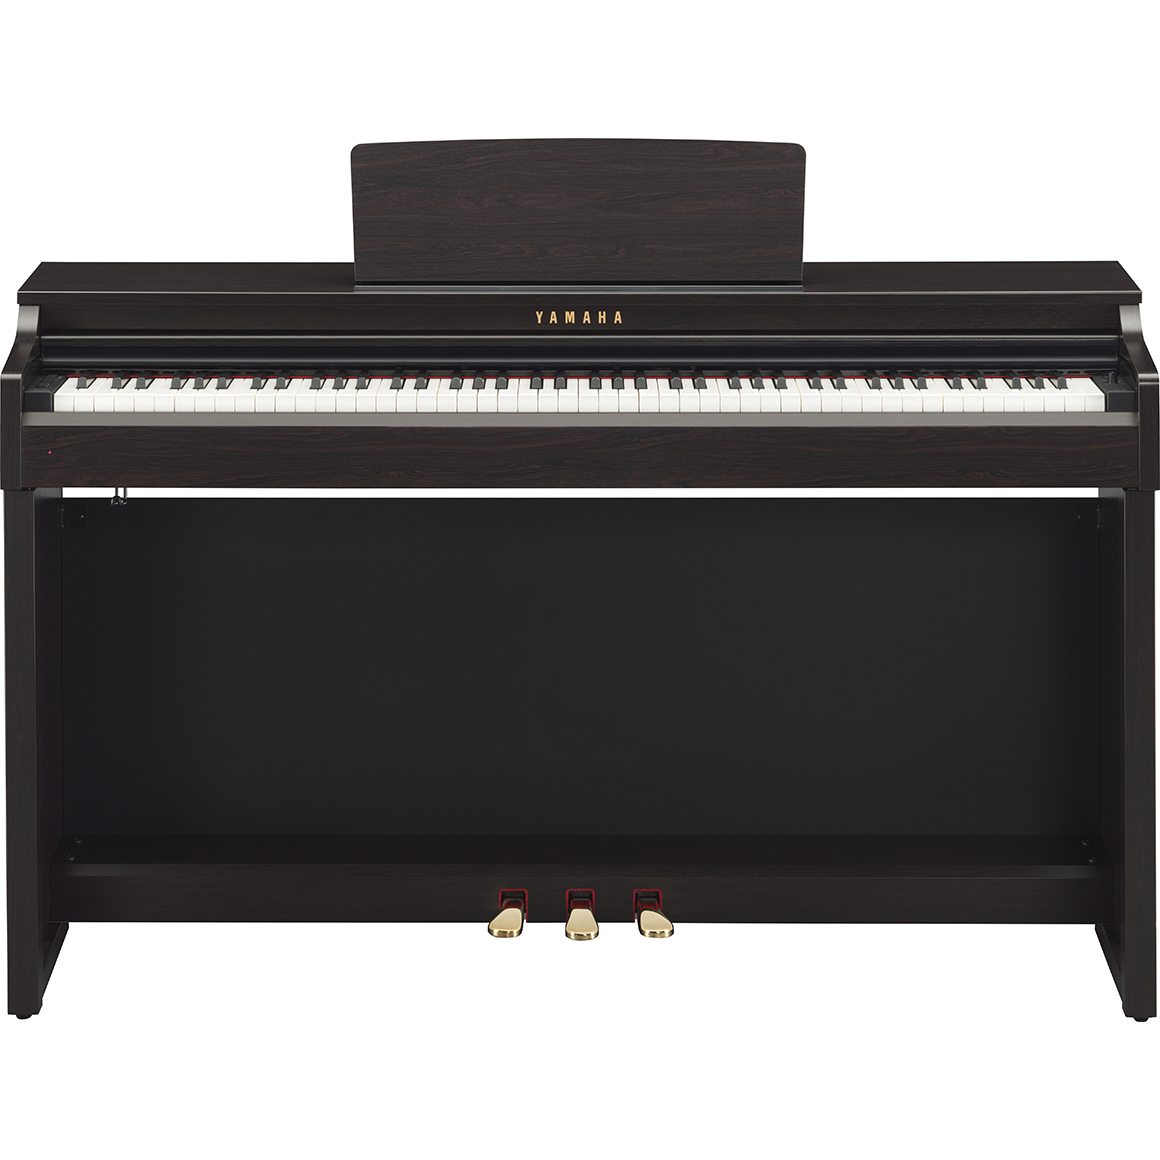 clp 525 absolute pianoabsolute piano. Black Bedroom Furniture Sets. Home Design Ideas